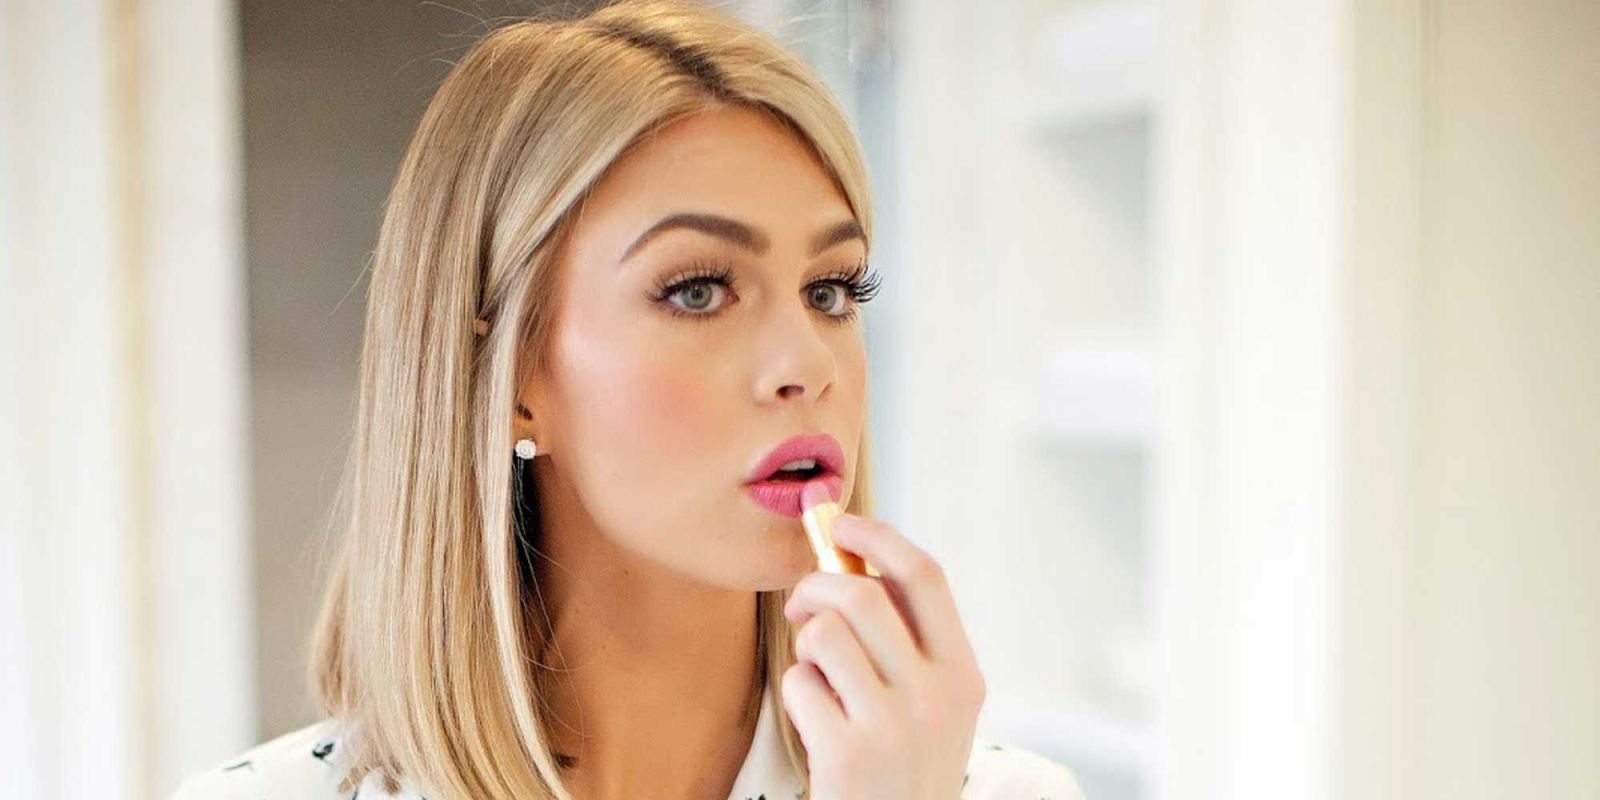 Making Your Own Wedding Makeup : 19 Genius Tips for Brides Who Want to Do Their Own Wedding ...